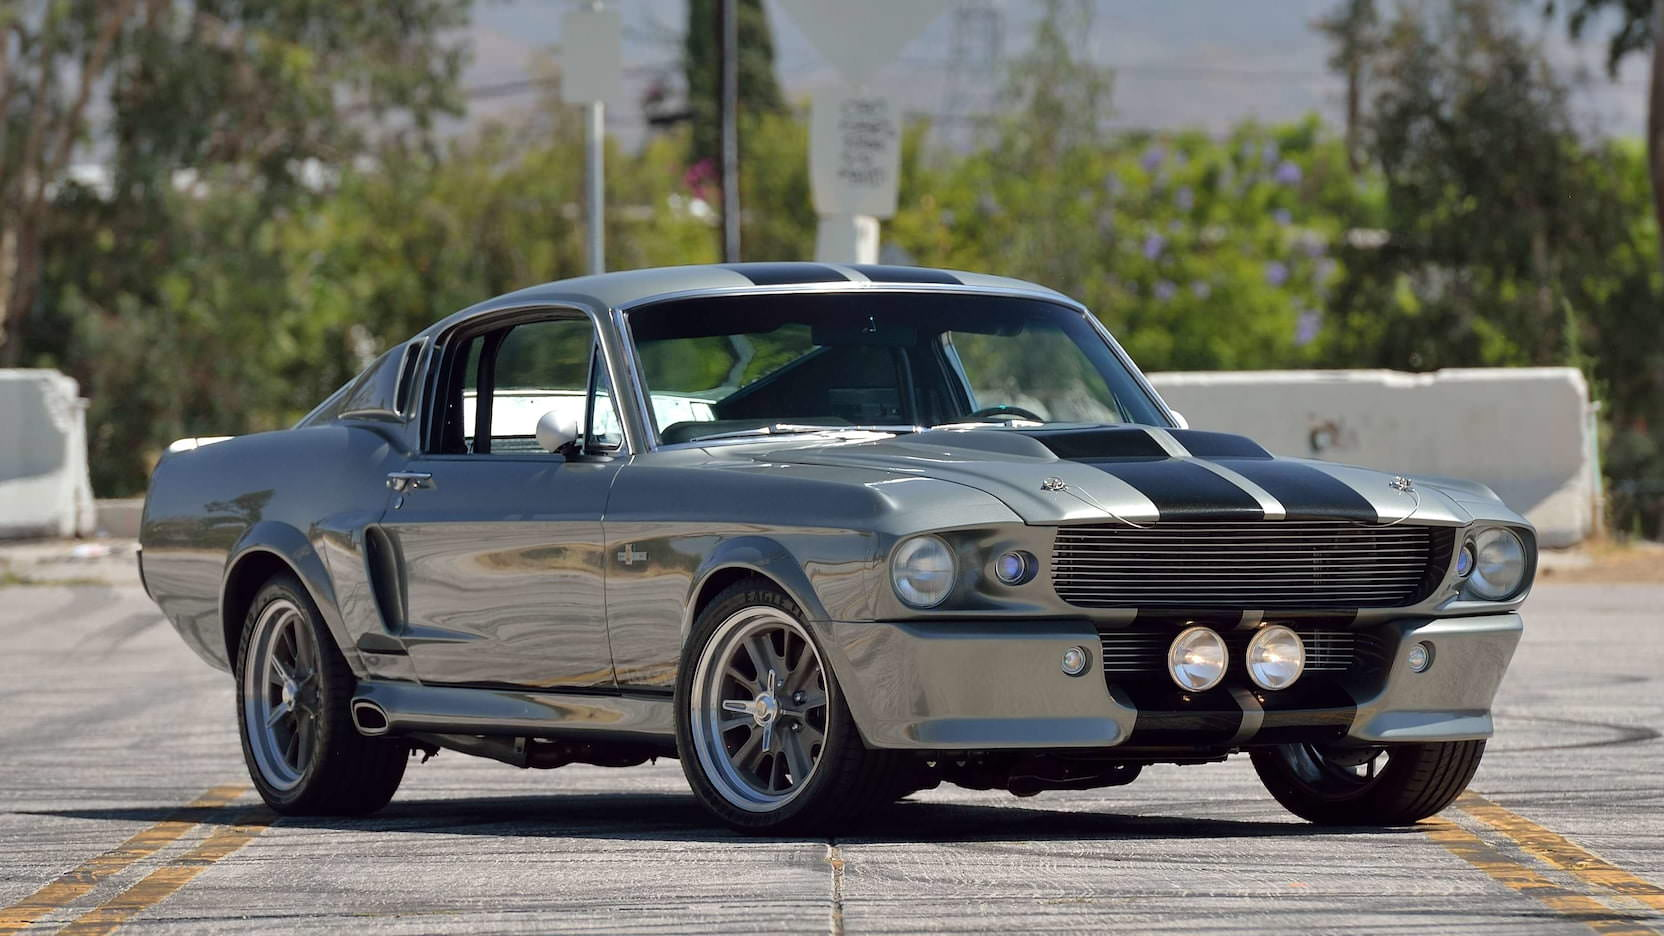 1967 Ford Mustang Shelby GT500 Eleanor from Gone In 60 Seconds